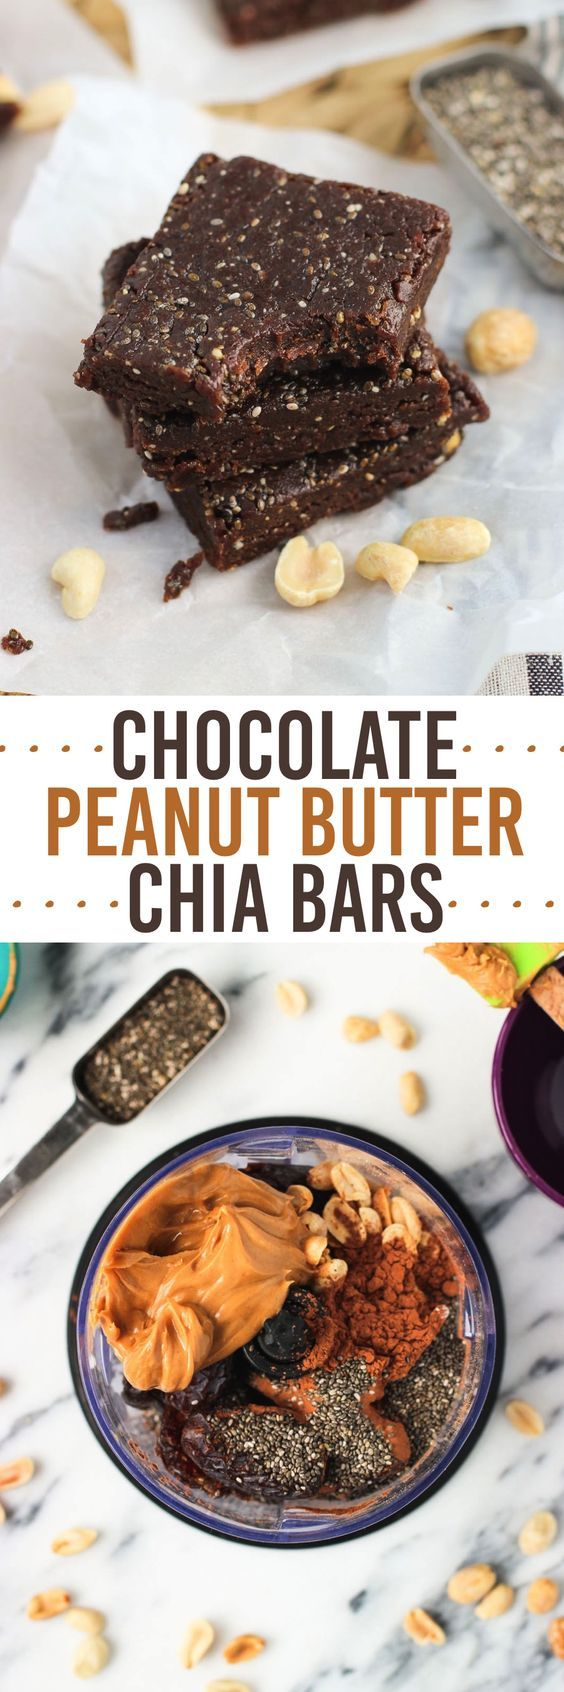 Chocolate Peanut Butter Chia Bars - an easy five-ingredient healthy snack recipe. These bars are no-bake, naturally sweetened, and vegan.